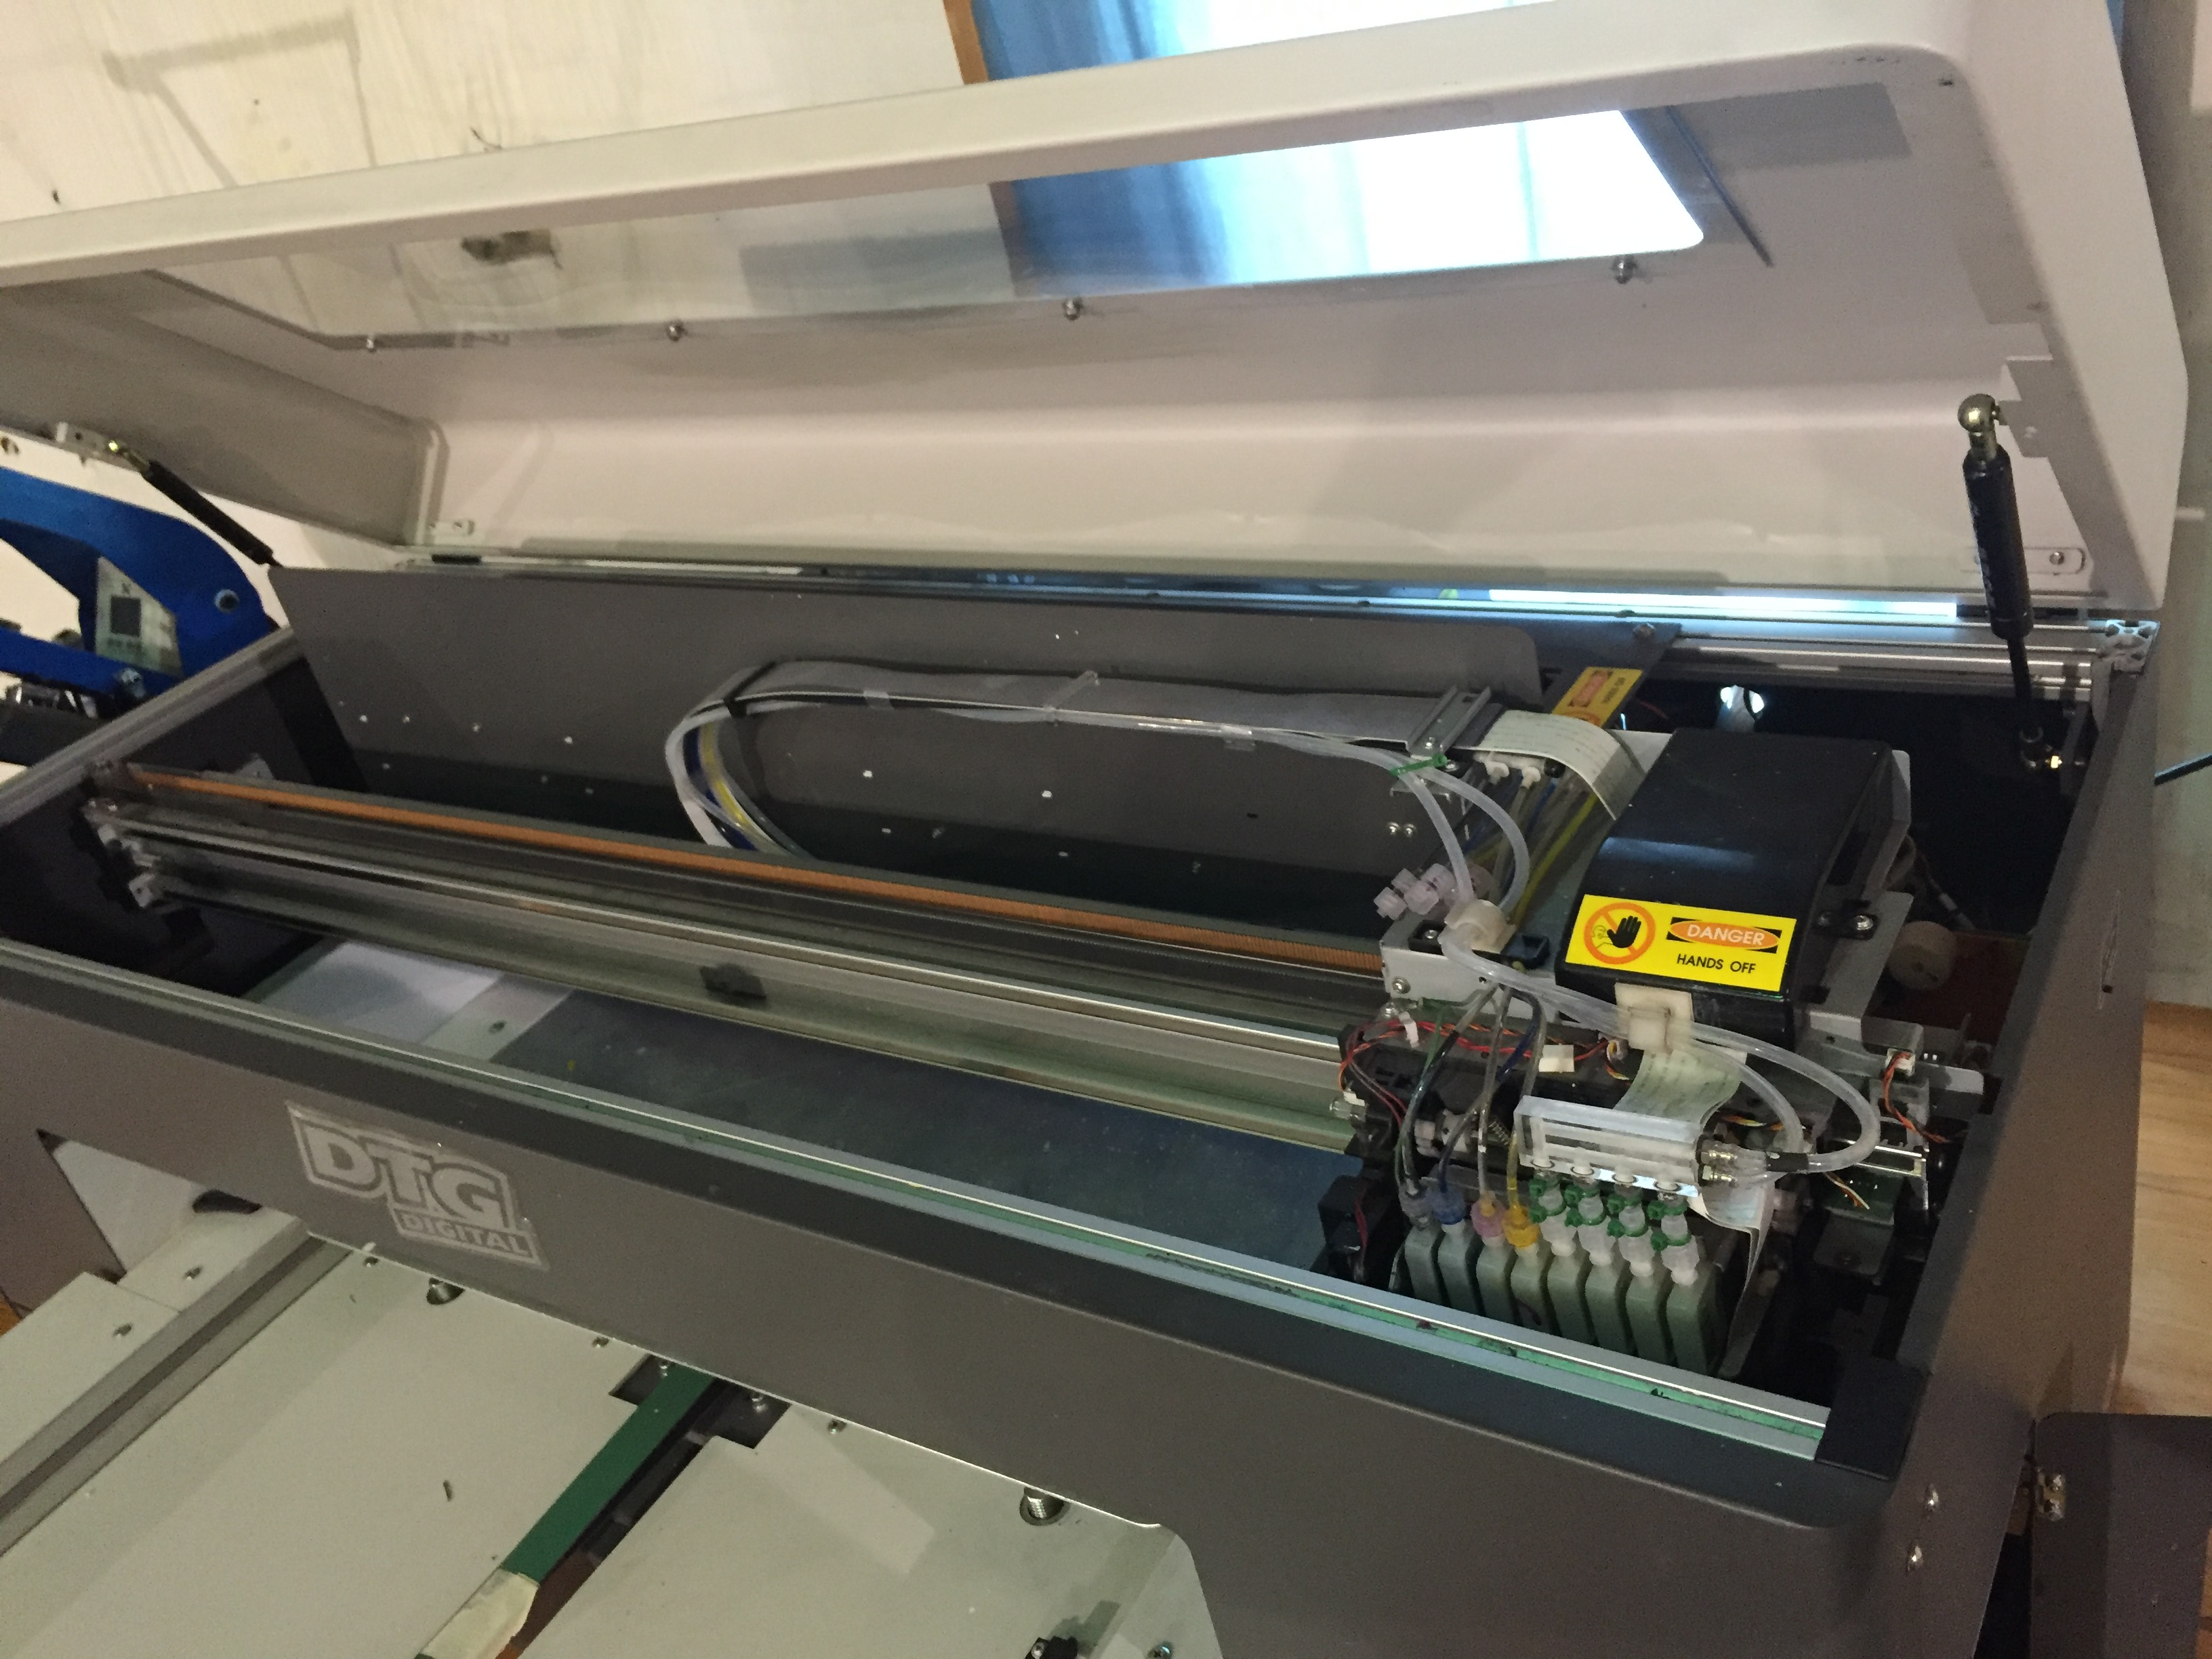 Dtg Printer For Sale >> DTG M2 Direct to Garment Printer $9000